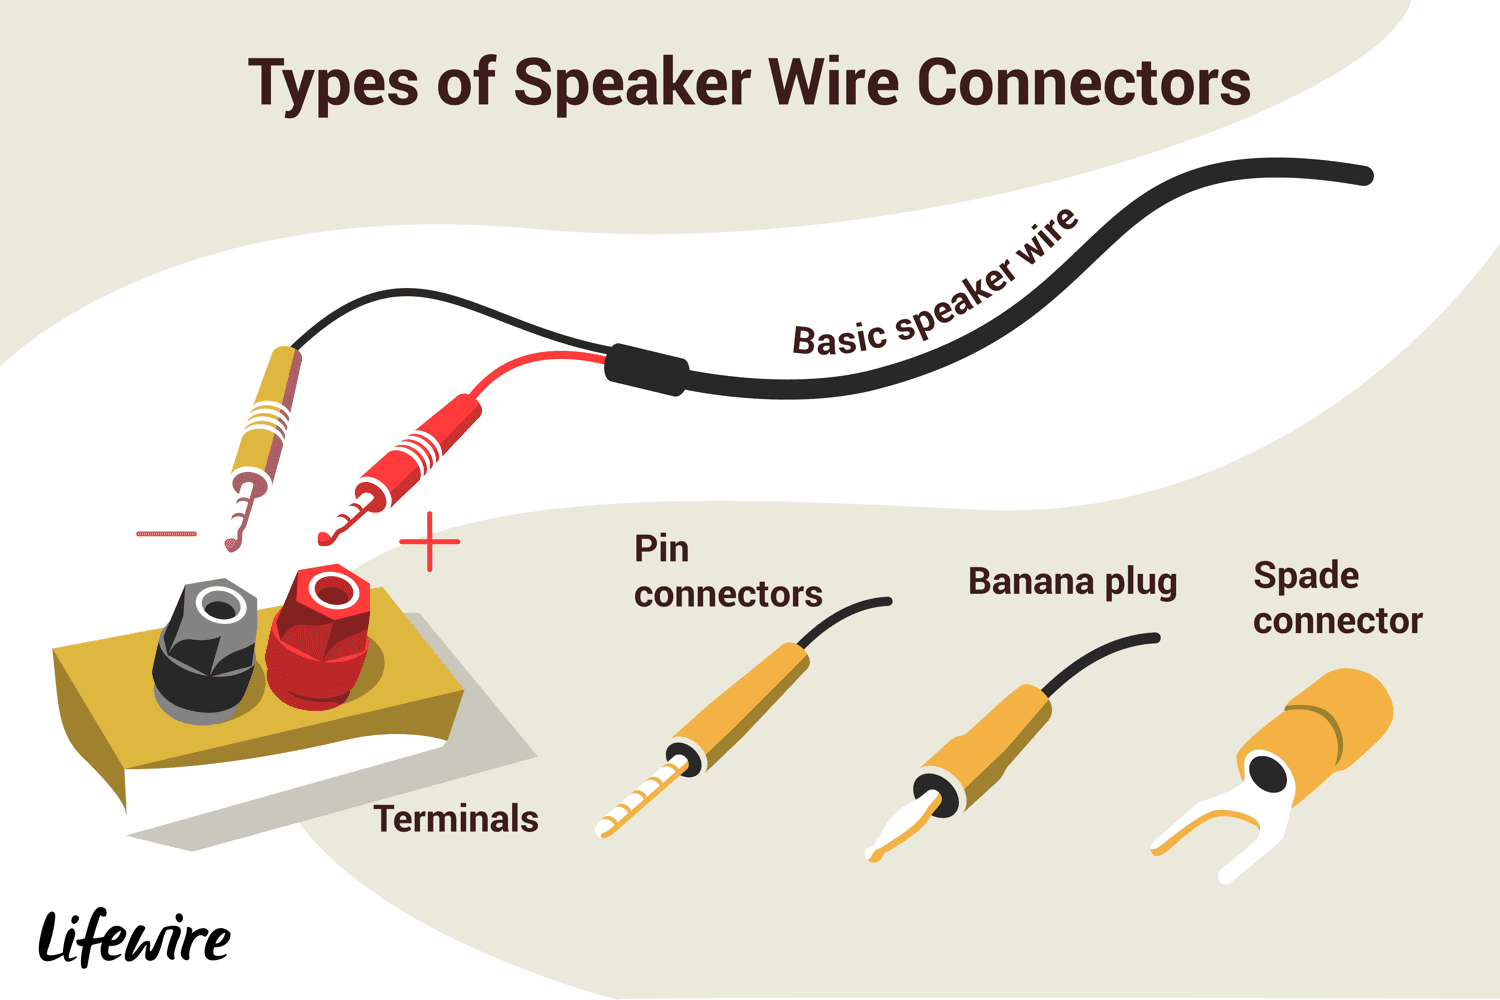 How to Connect Speakers Using Speaker Wire Speaker Cable Wiring Diagram on battery wiring diagram, speaker cable wire, accessories wiring diagram, 2 speakers wiring diagram, remote control wiring diagram, amplifier wiring diagram, audio wiring diagram, speaker capacitor diagram, speaker cable coil, component wiring diagram, power wiring diagram, headphones wiring diagram, speaker cable parts diagram, switch wiring diagram, subwoofer wiring diagram, dvd wiring diagram, cable block diagram, bnc wiring diagram, woofer wiring diagram, s-video wiring diagram,